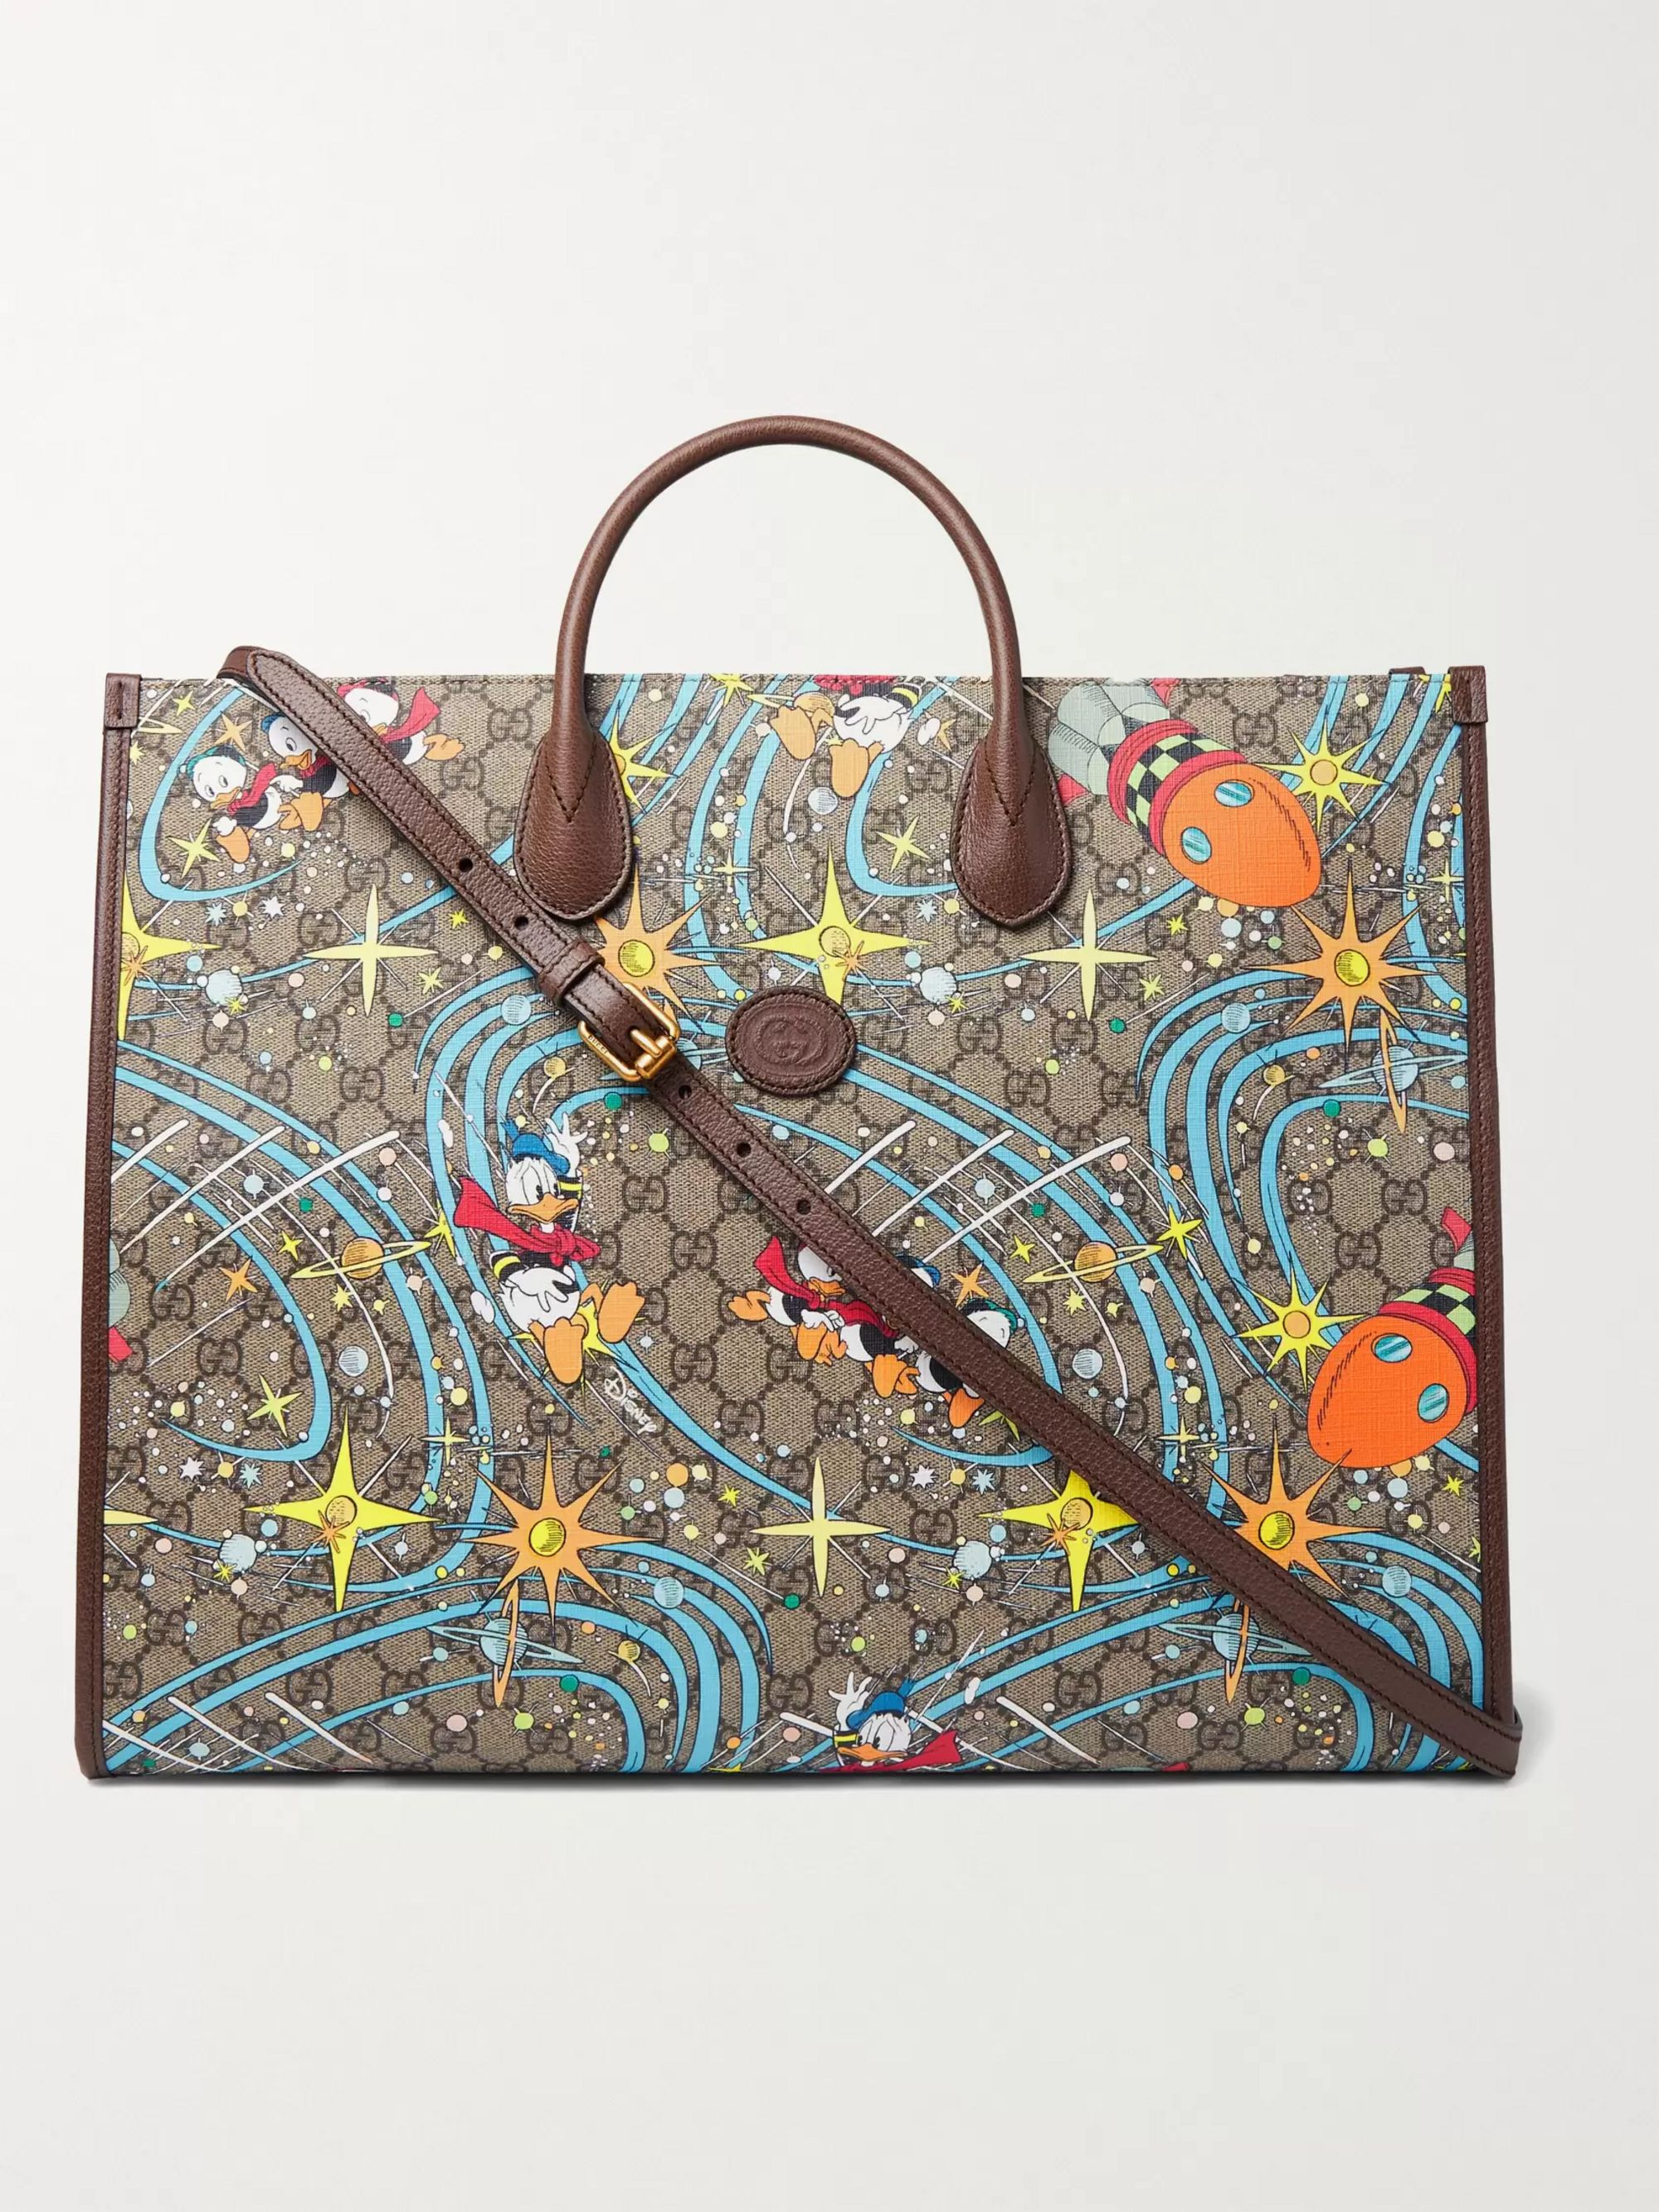 GUCCI + Disney Leather-Trimmed Printed Monogrammed Coated-Canvas Tote Bag